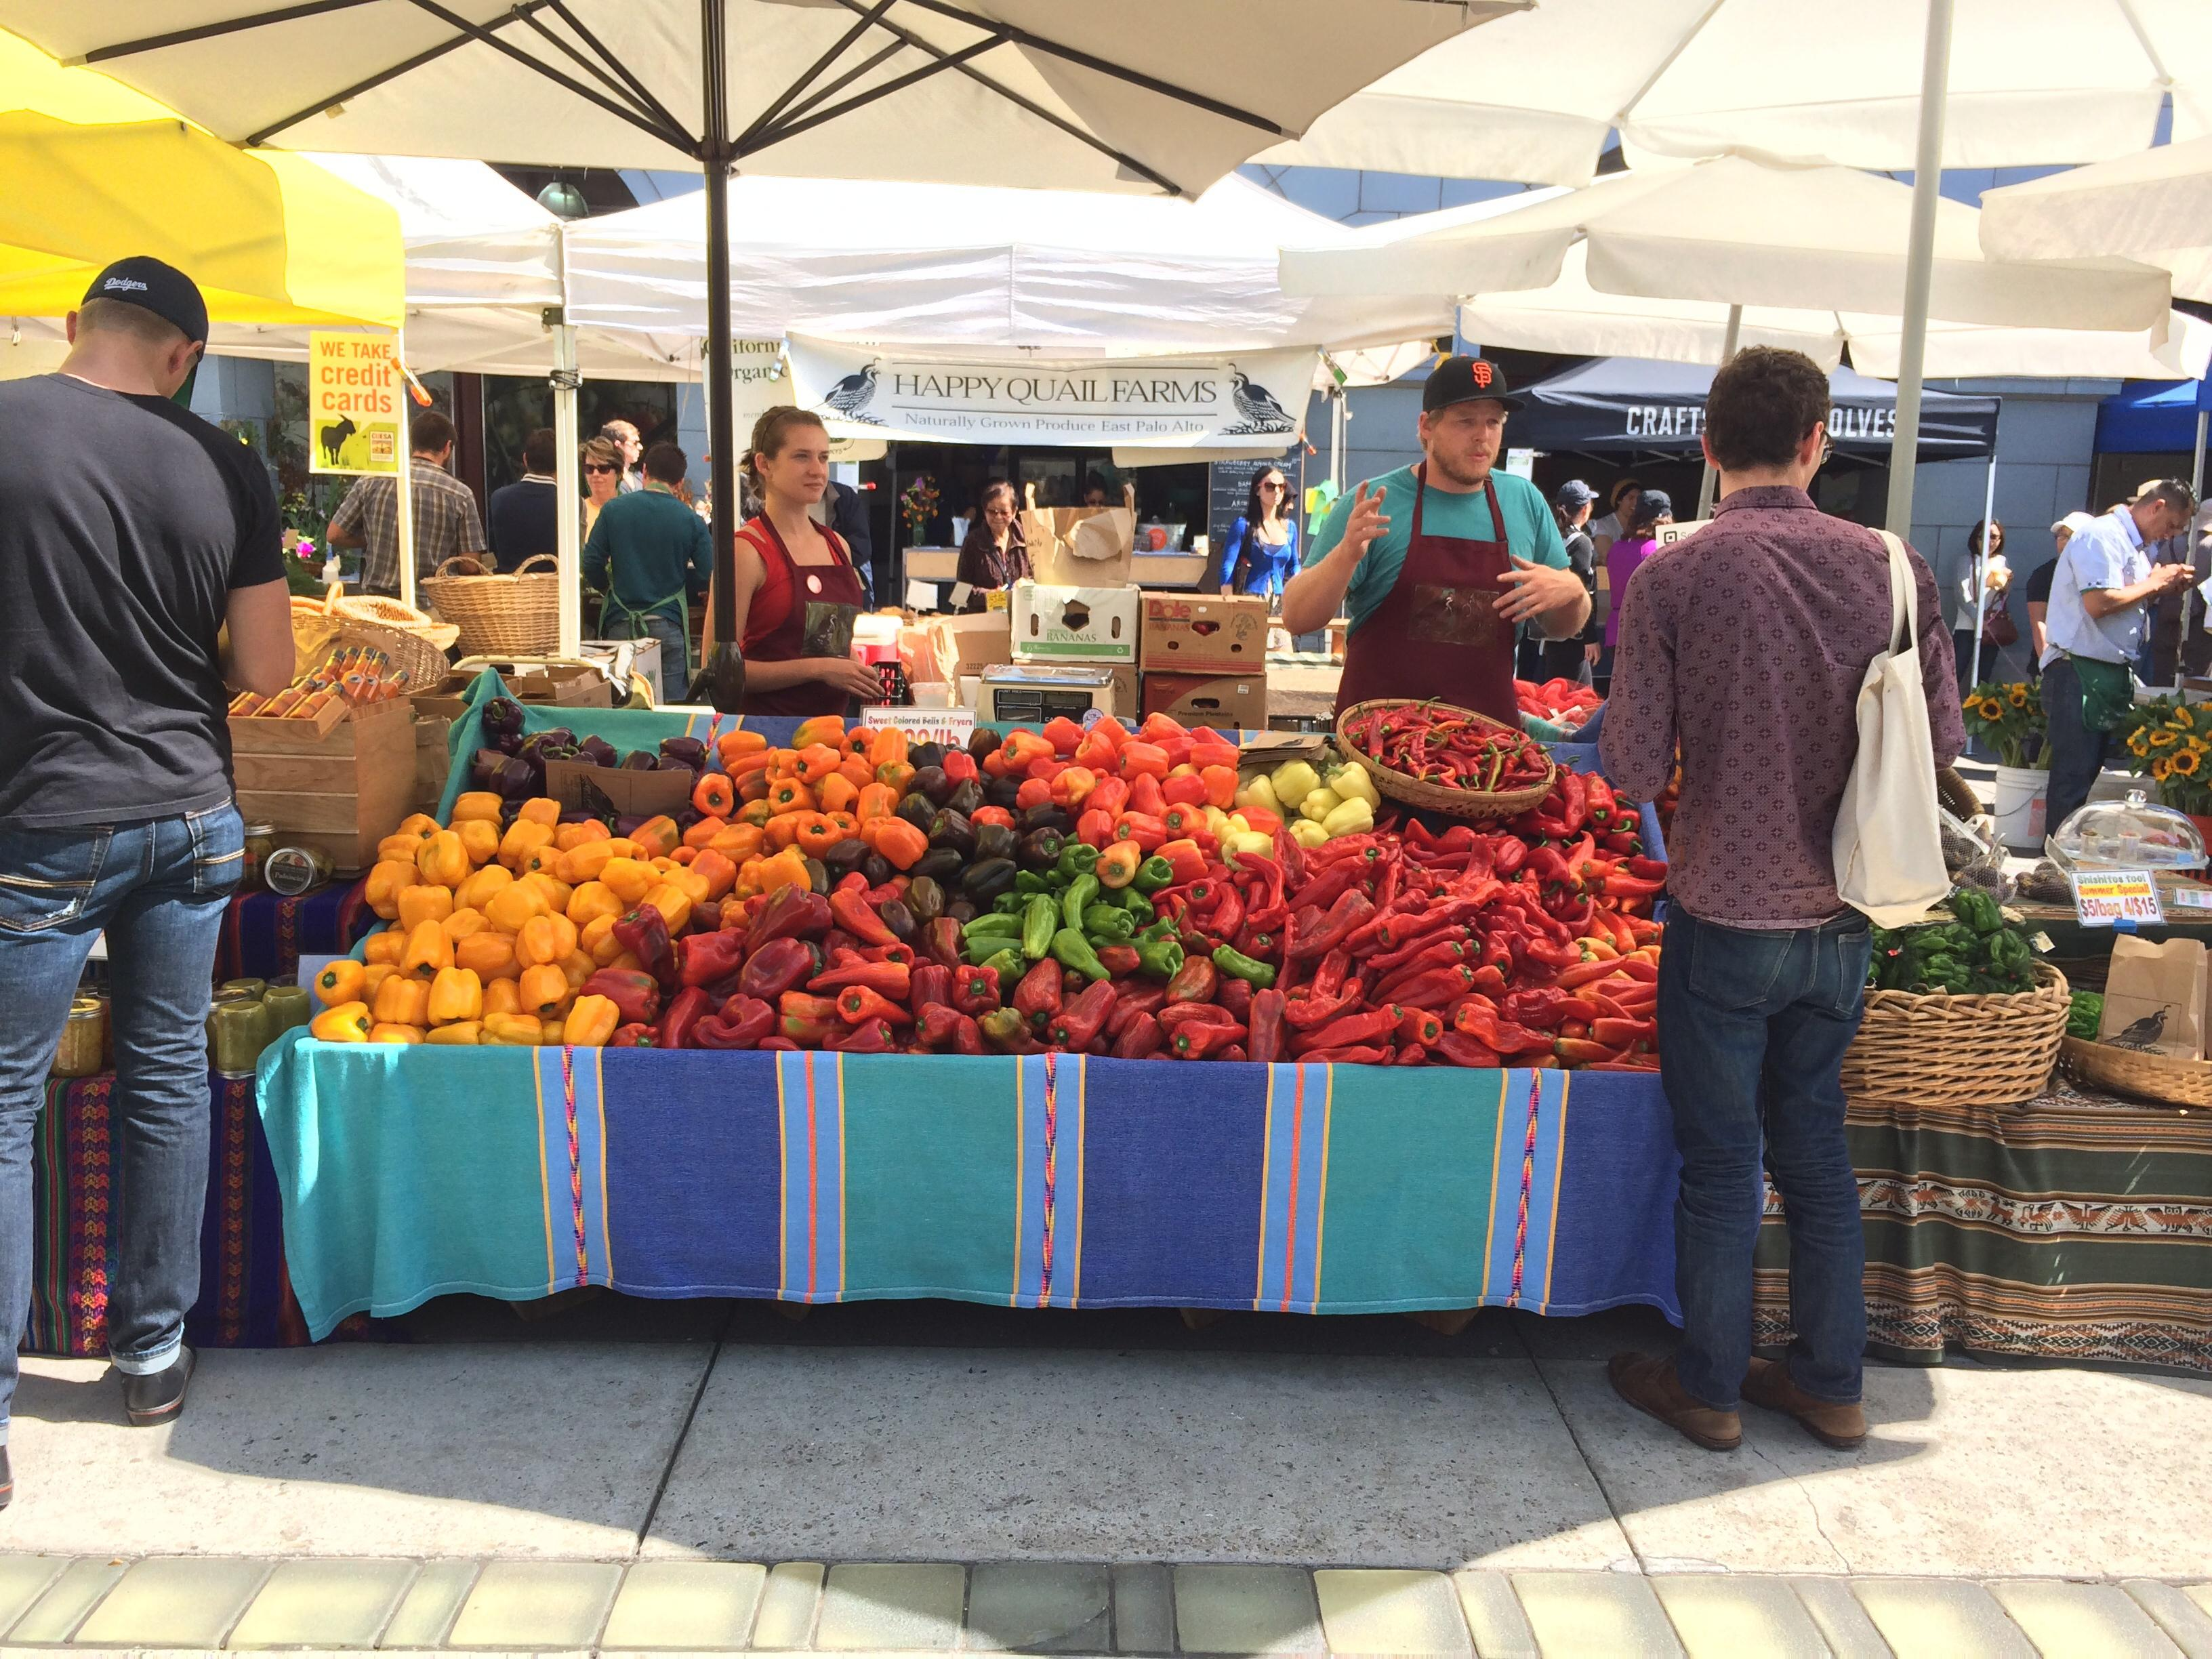 Opinion: Why Self-publishing Is Like A Farmers' Market